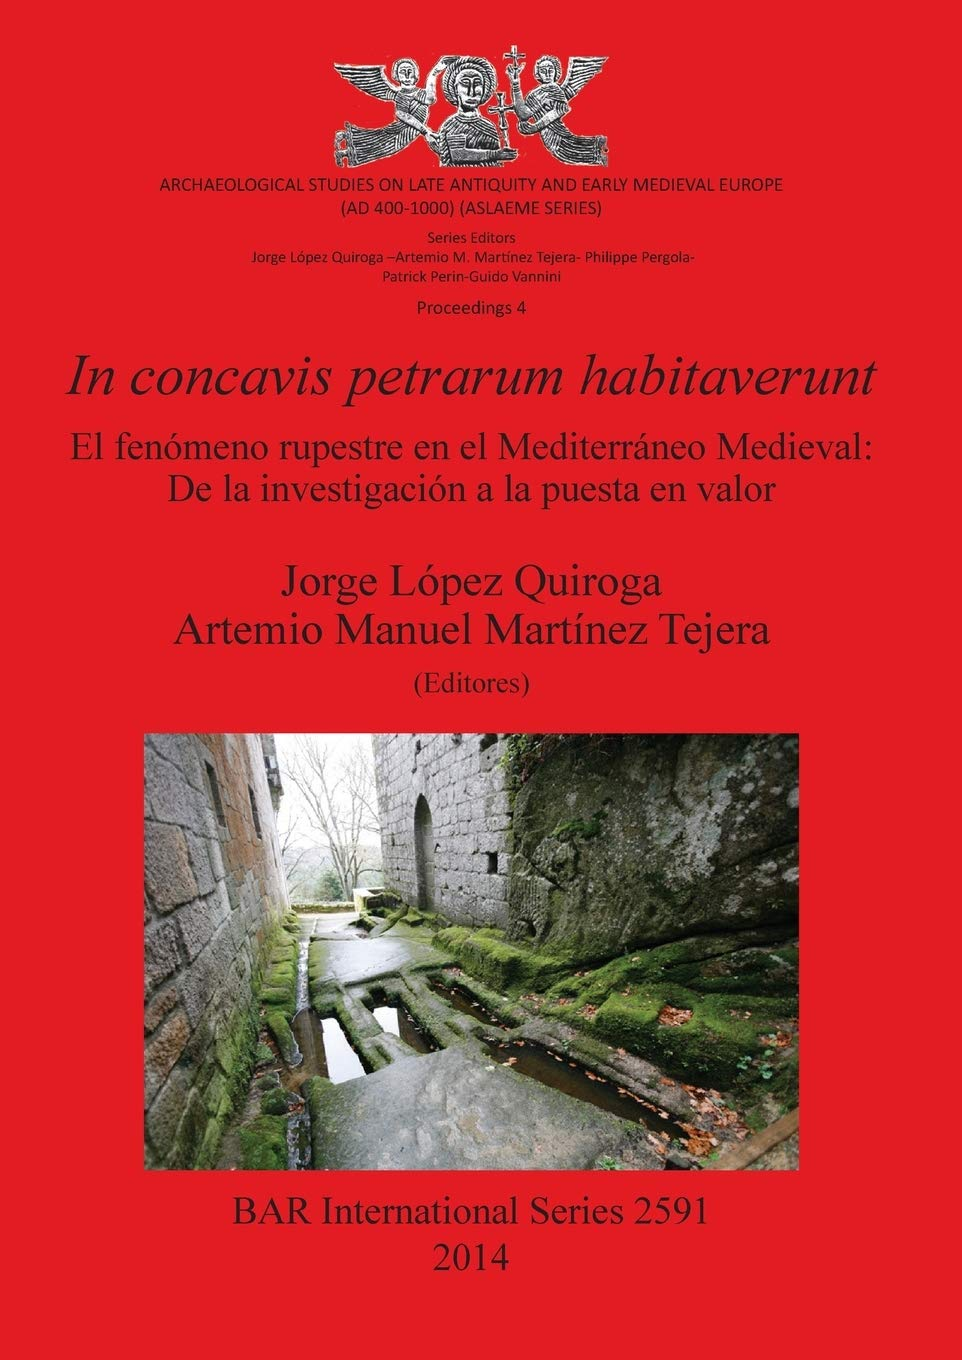 In concavis petrarum habitaverunt: El fenómeno rupestre en el Mediterráneo Medieval: De la investigación a la puesta en valor 2591 British Archaeological Reports International Series: Amazon.es: Quiroga, Jorge López, Tejera, Artemio Manuel